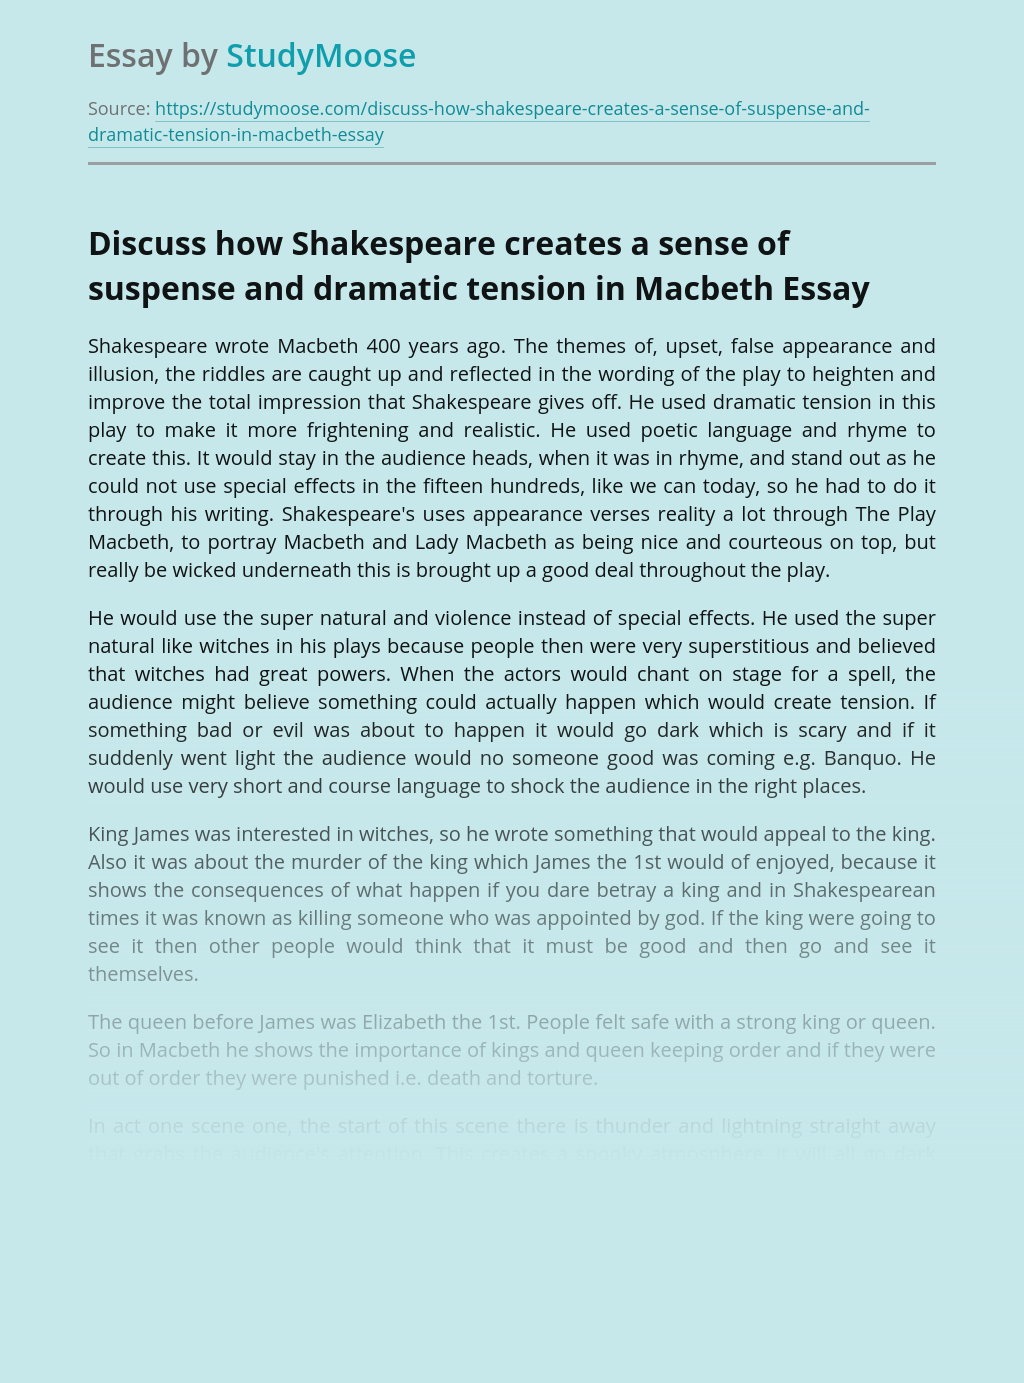 Discuss how Shakespeare creates a sense of suspense and dramatic tension in Macbeth